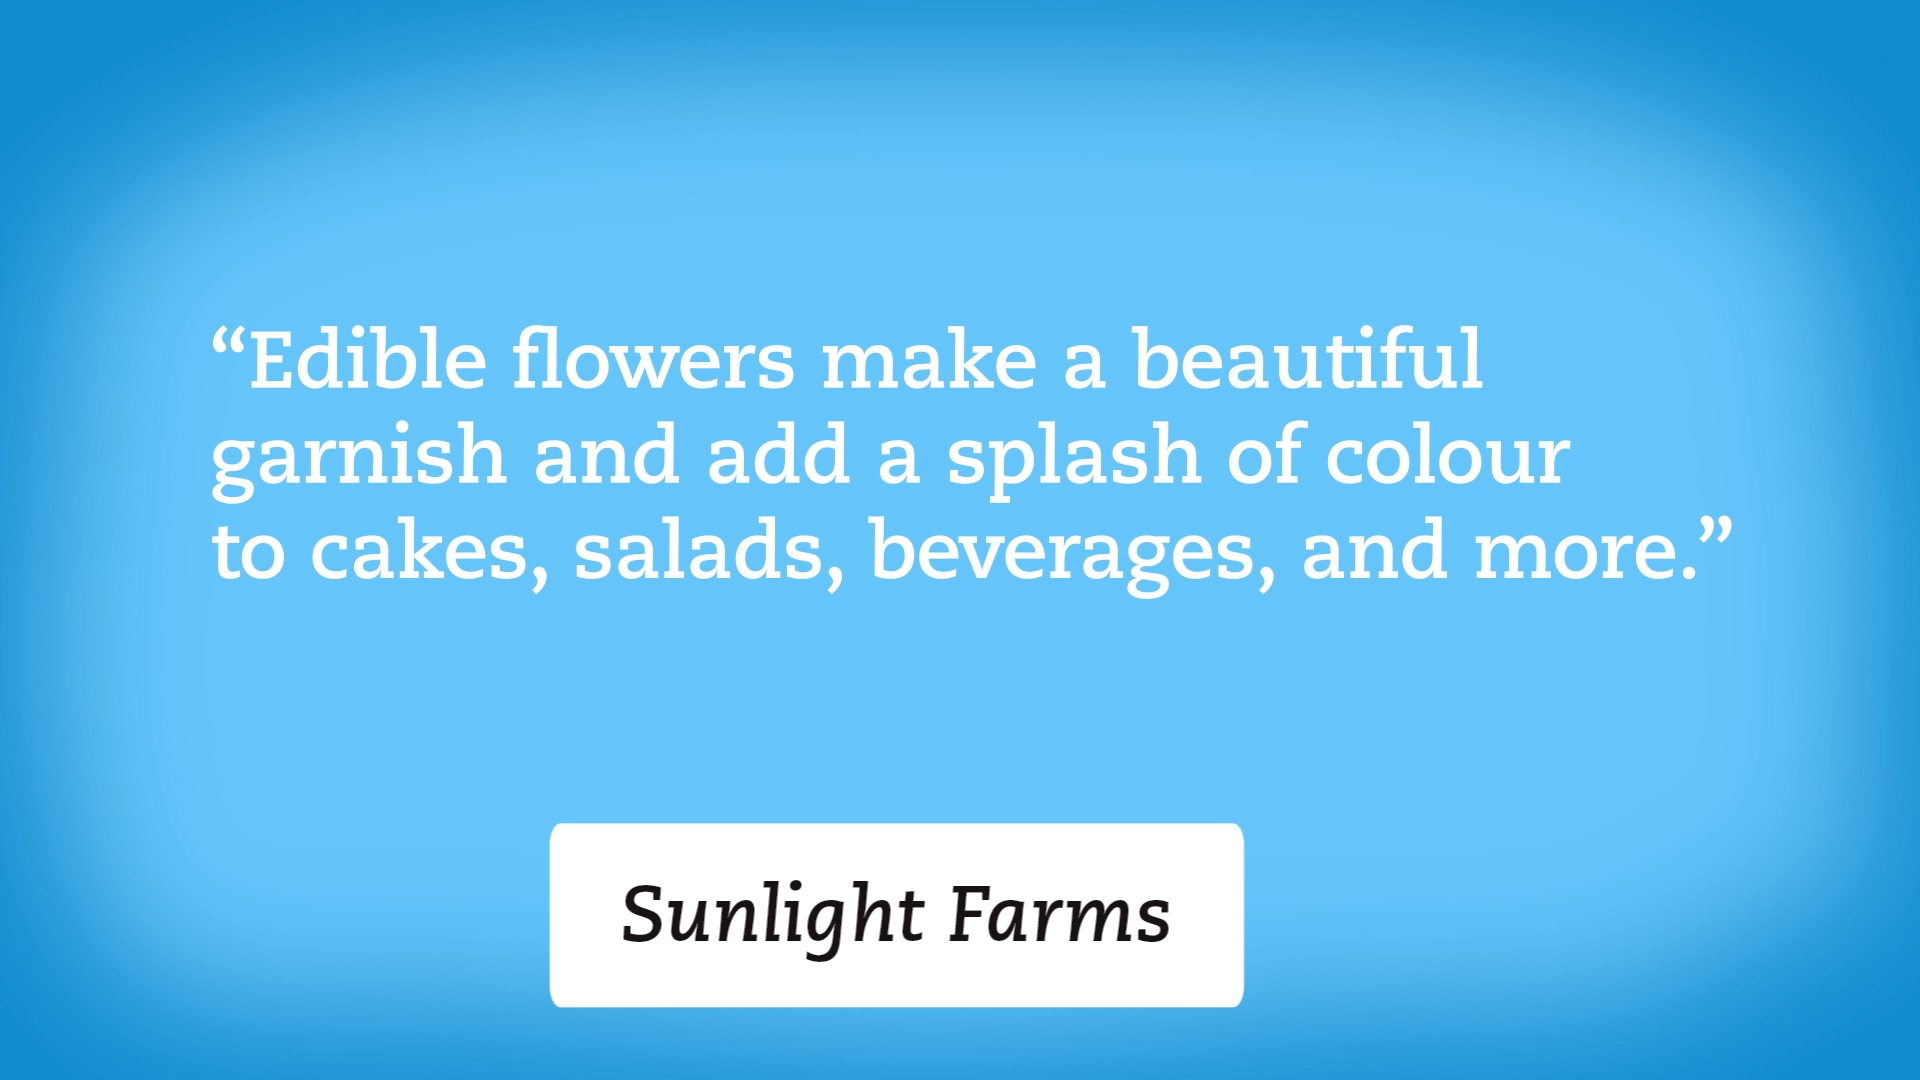 Edible flowers make a beautiful garnish and add a splash of colour to cakes, salads, beverages, and more.